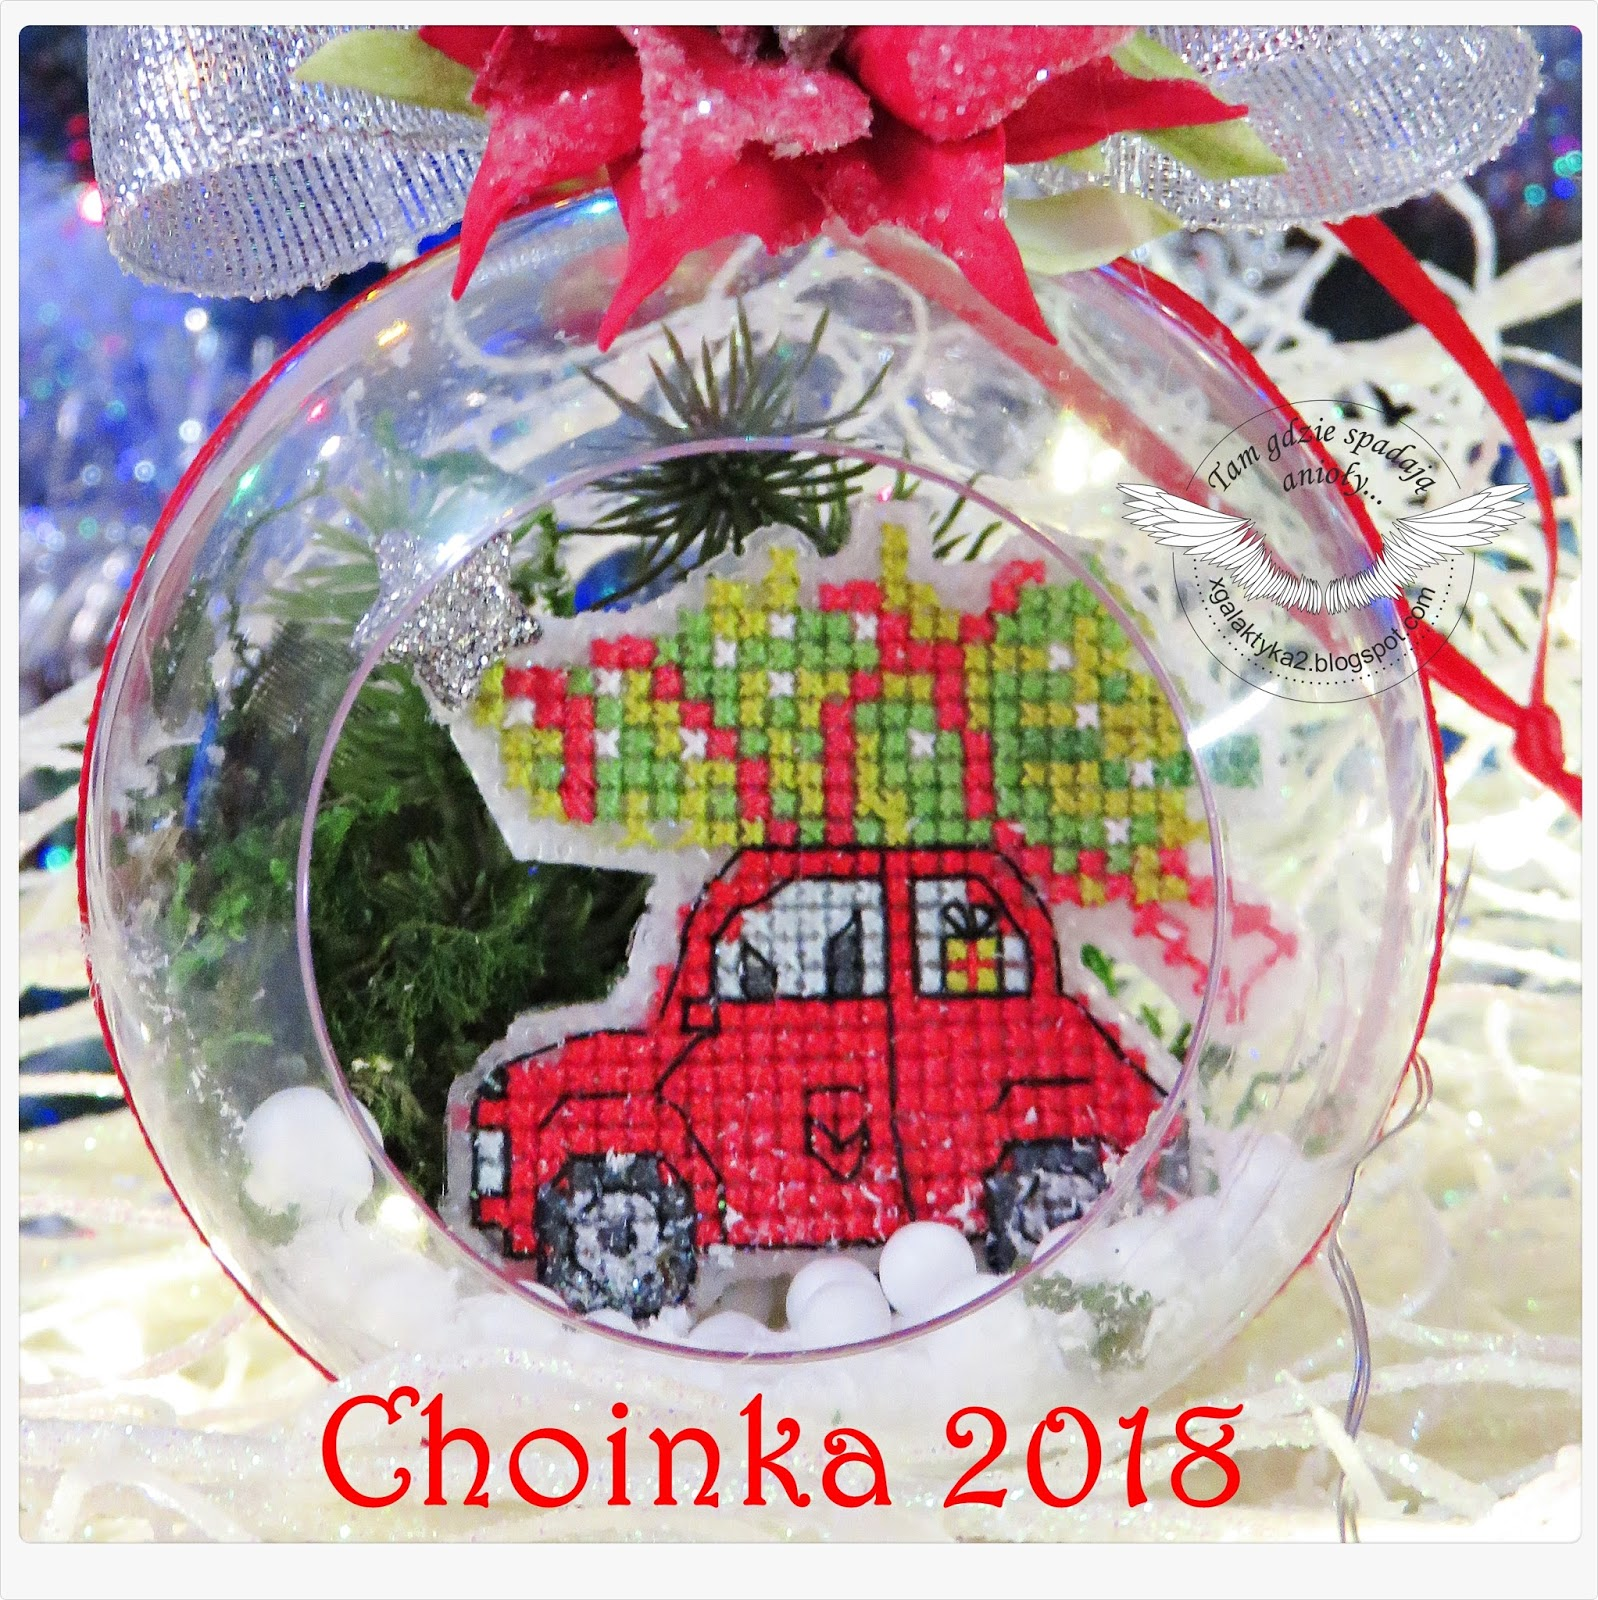 Choinka 2018